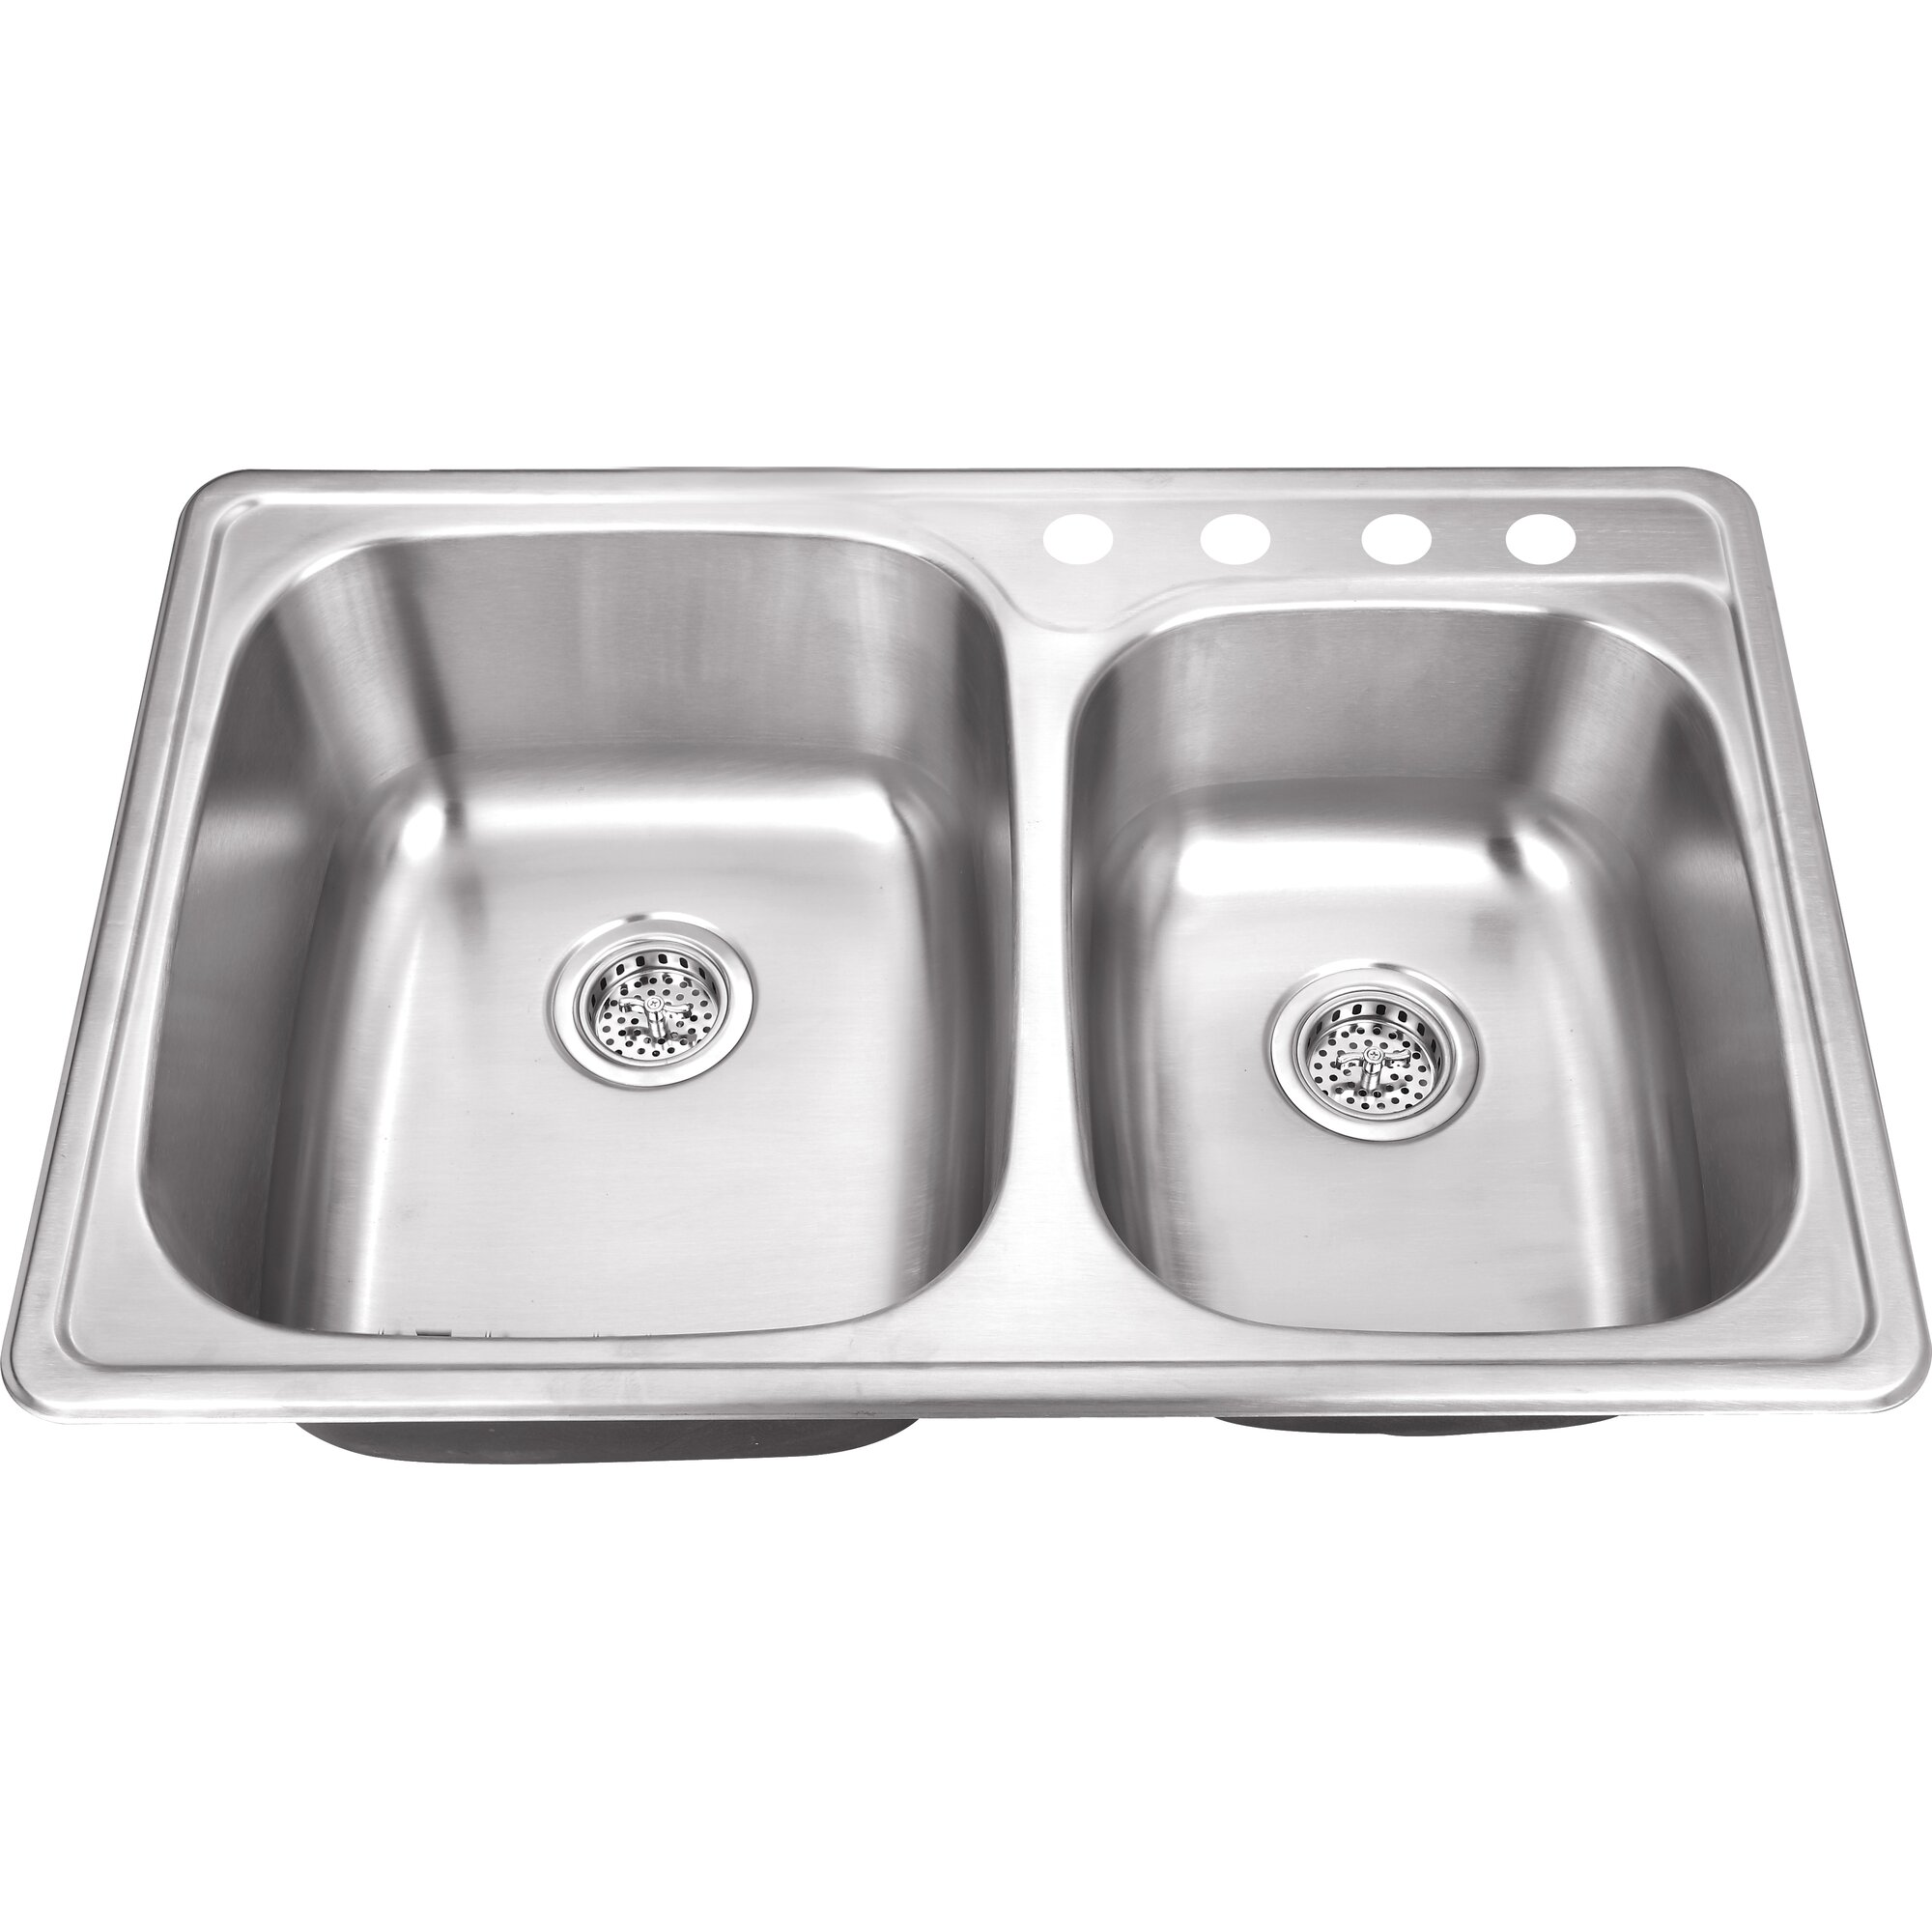 33 x 22 stainless steel drop in double bowl kitchen sink - Bowl Kitchen Sink